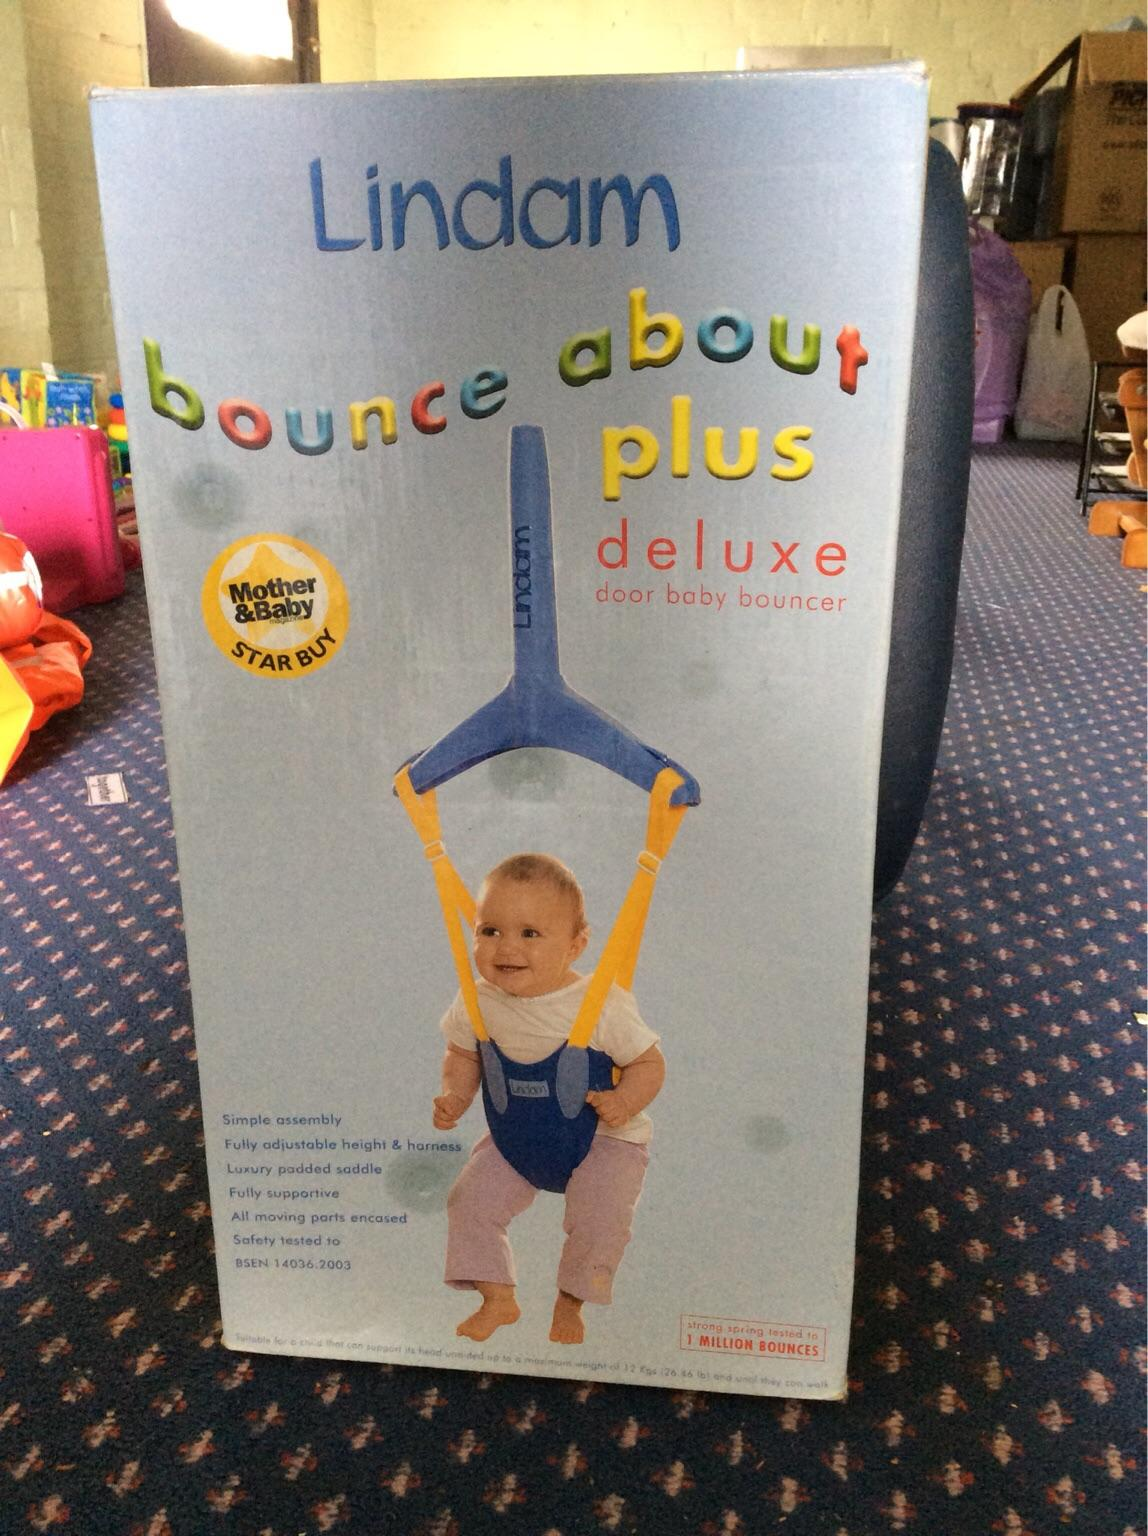 34f53e29d Lindam bounce about plus deluxe baby bouncer in Kirby Muxloe for £10 ...